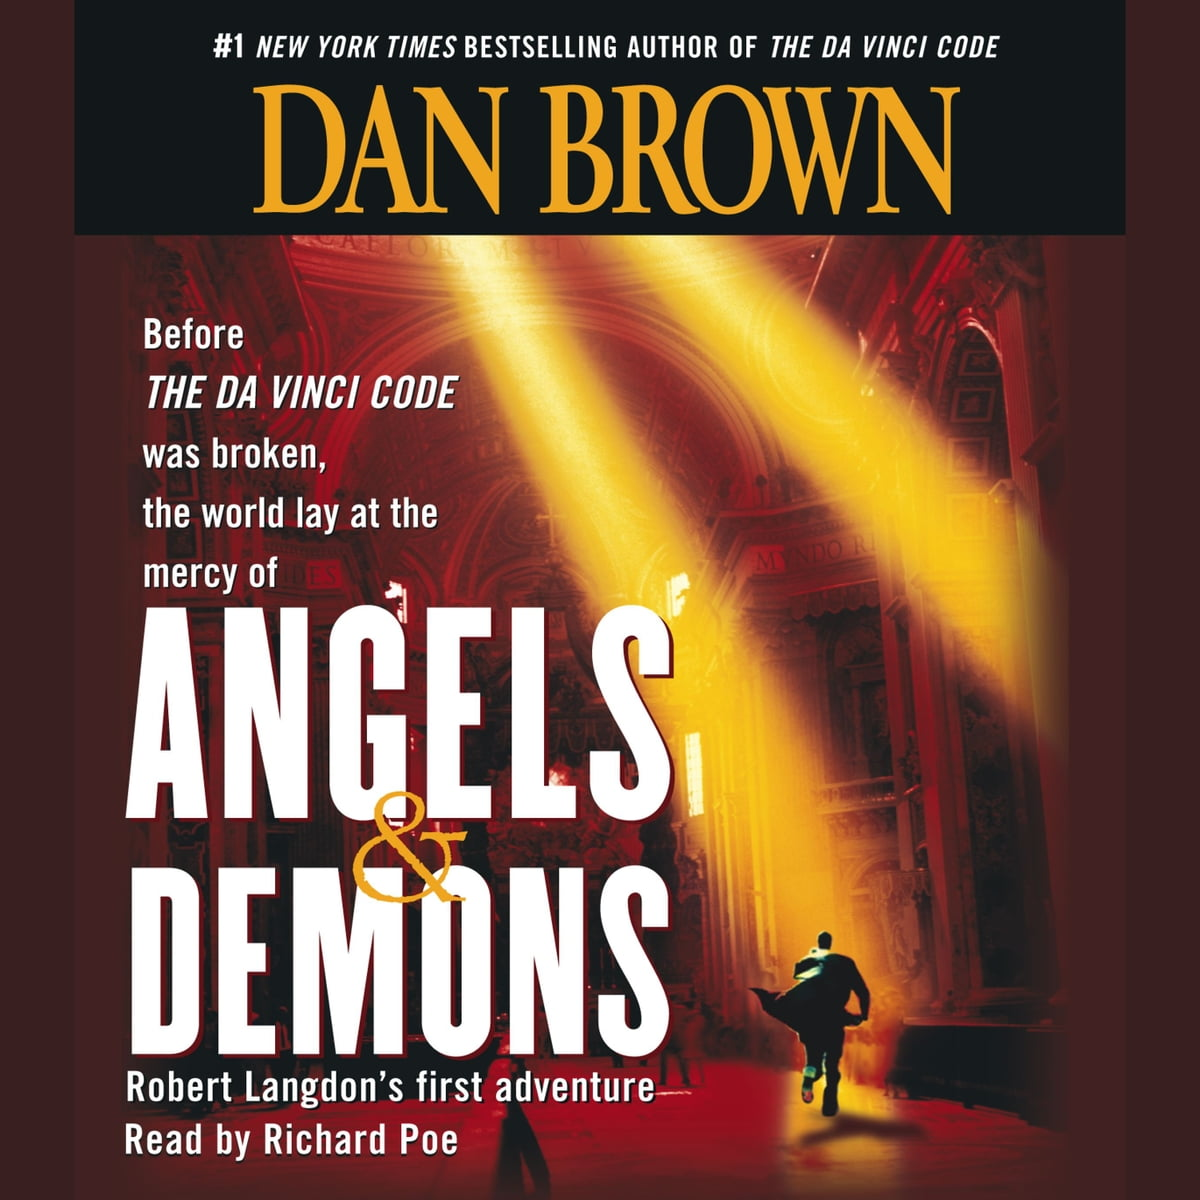 Angels demons audiobook by dan brown 9780743550208 rakuten kobo buycottarizona